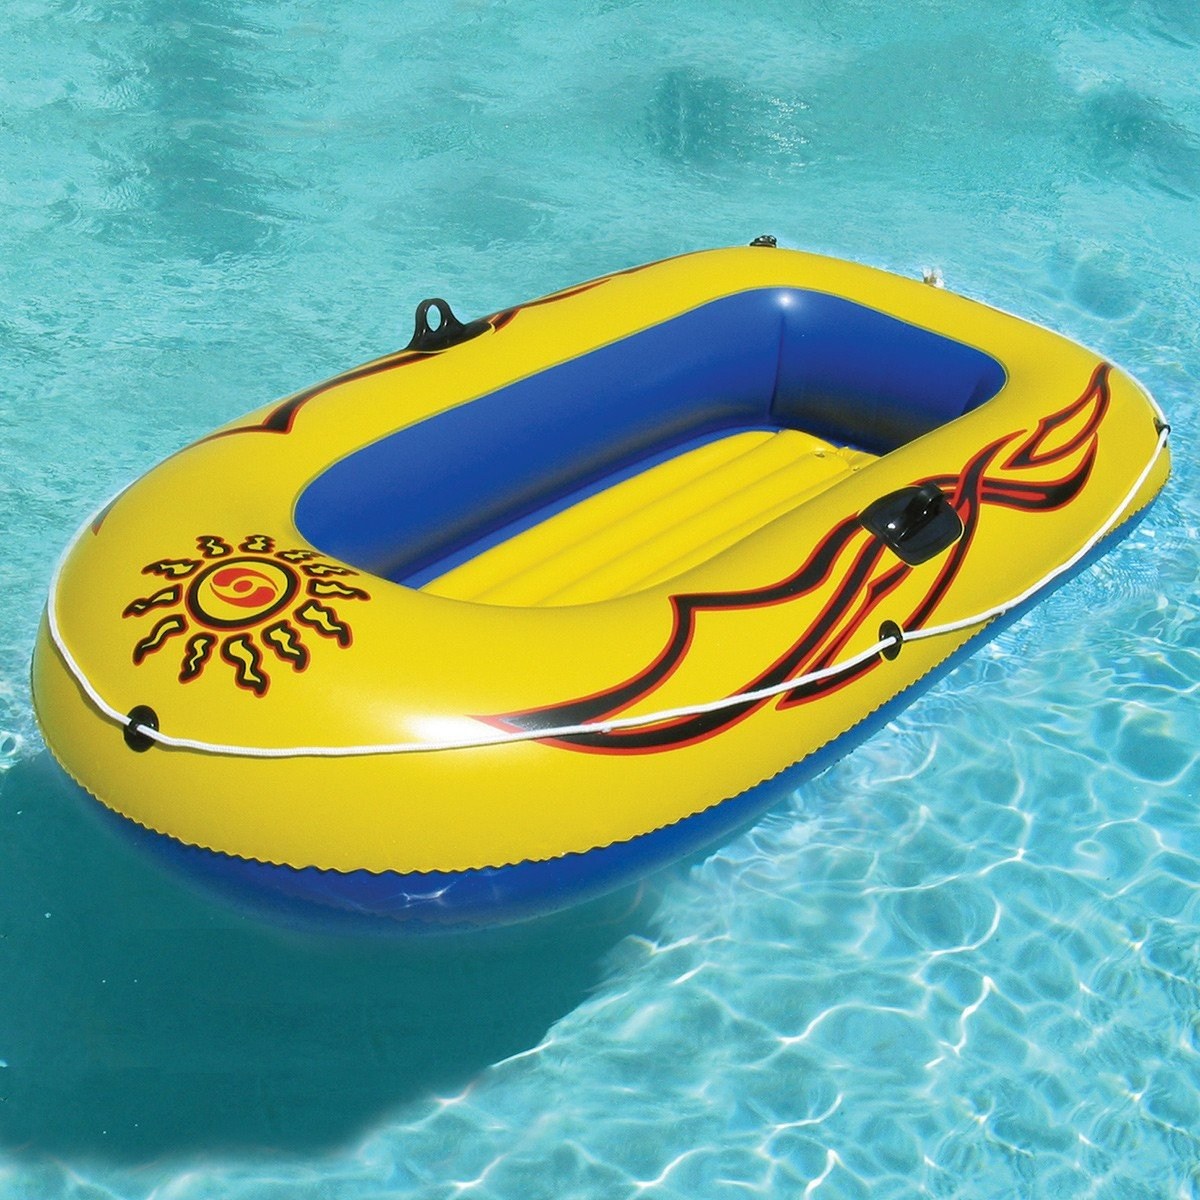 Solstice SunSkiff Single Person Inflatable Boat